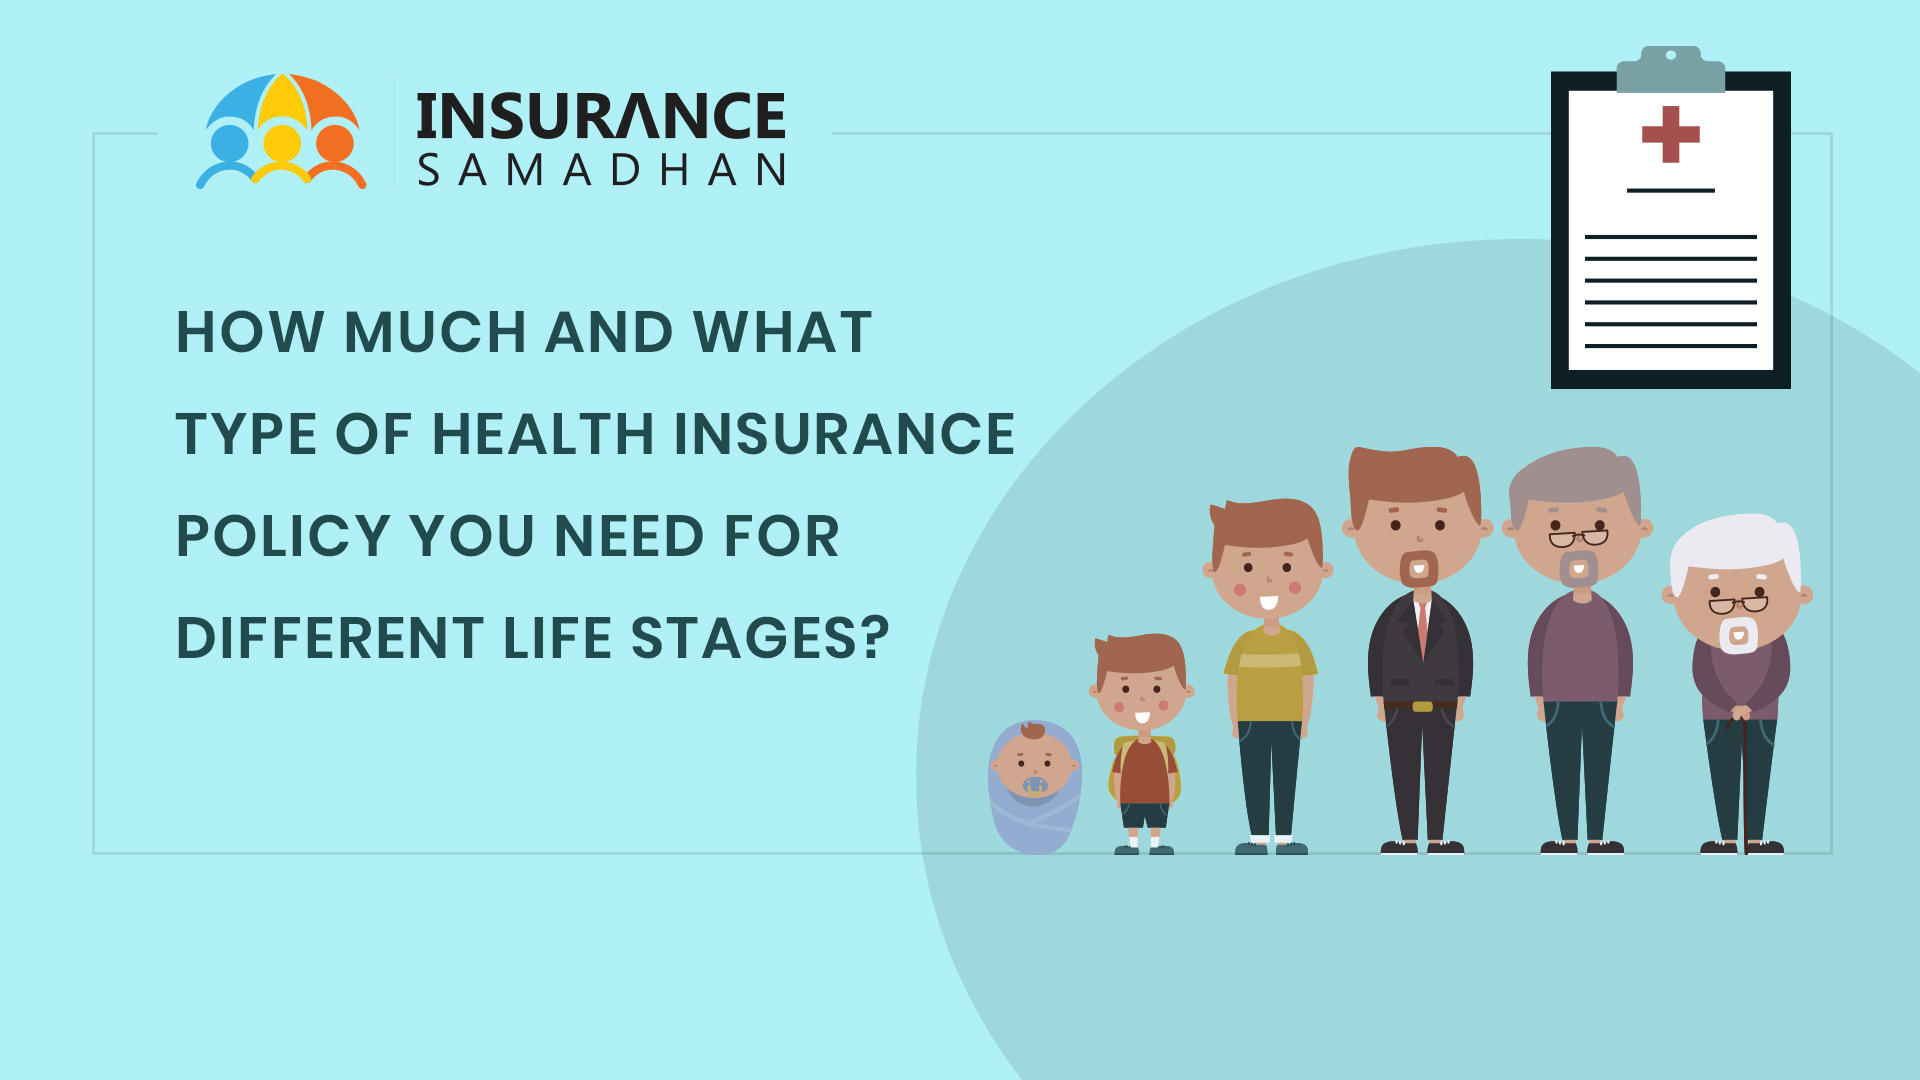 How much and what type of Health Insurance Policy you need for different life stages?